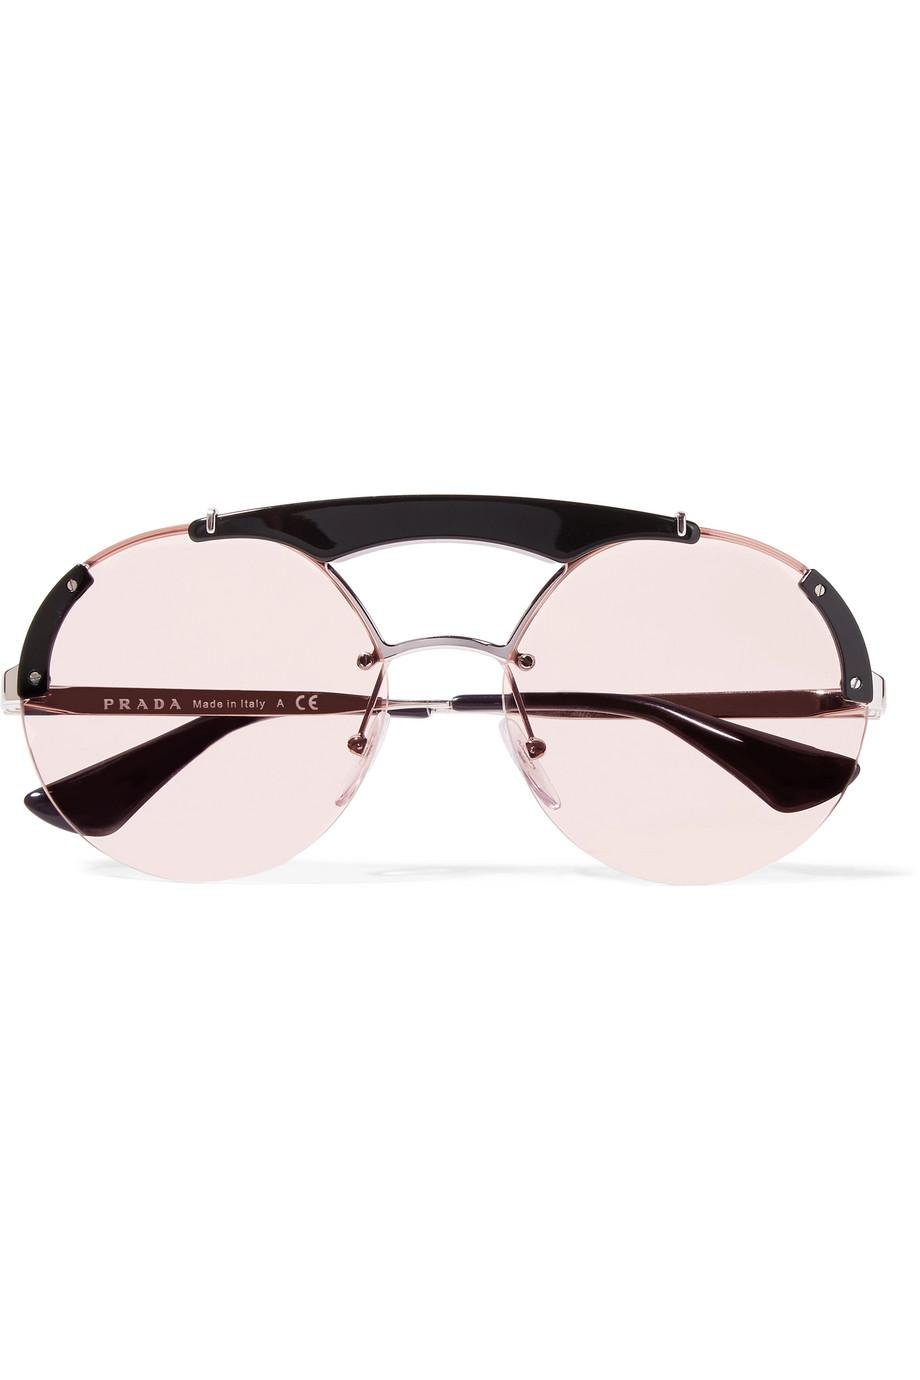 458c24a8ba25f Lyst - Prada Round-frame Acetate And Silver-tone Sunglasses in Pink